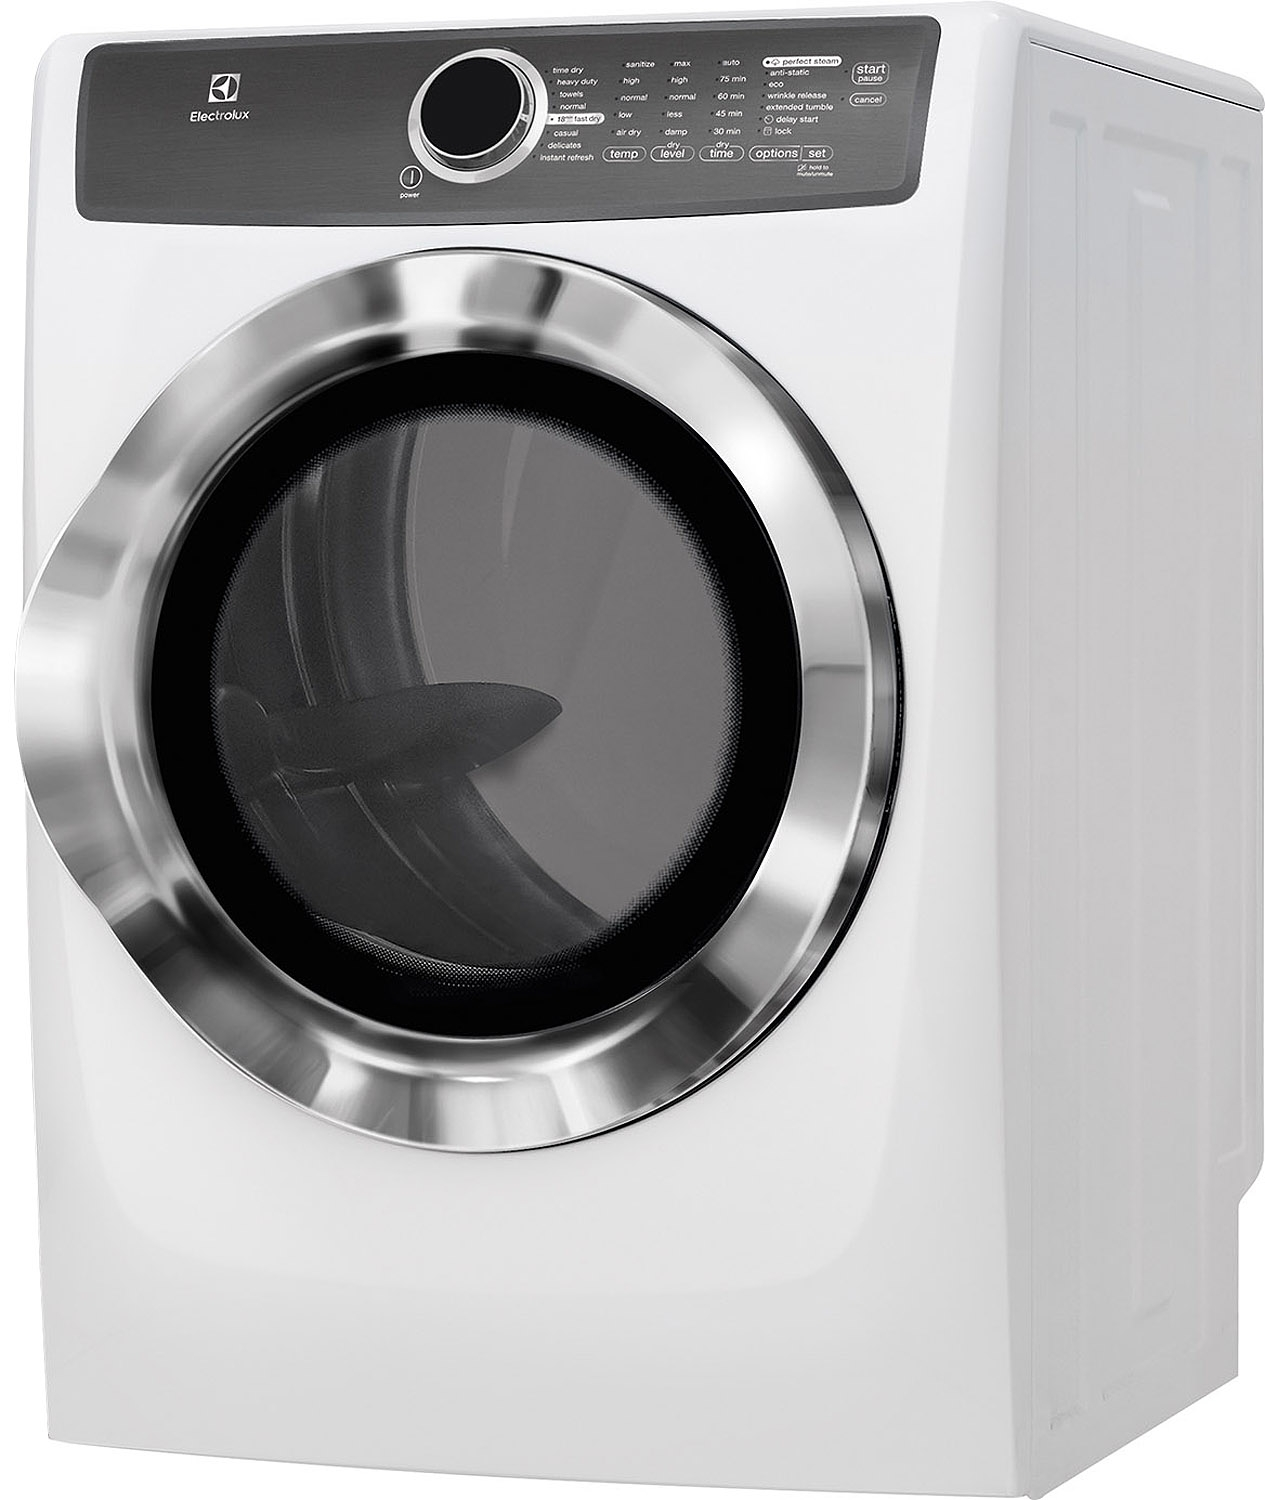 Electrolux island white electric steam dryer efme517siw main image 1 sciox Choice Image